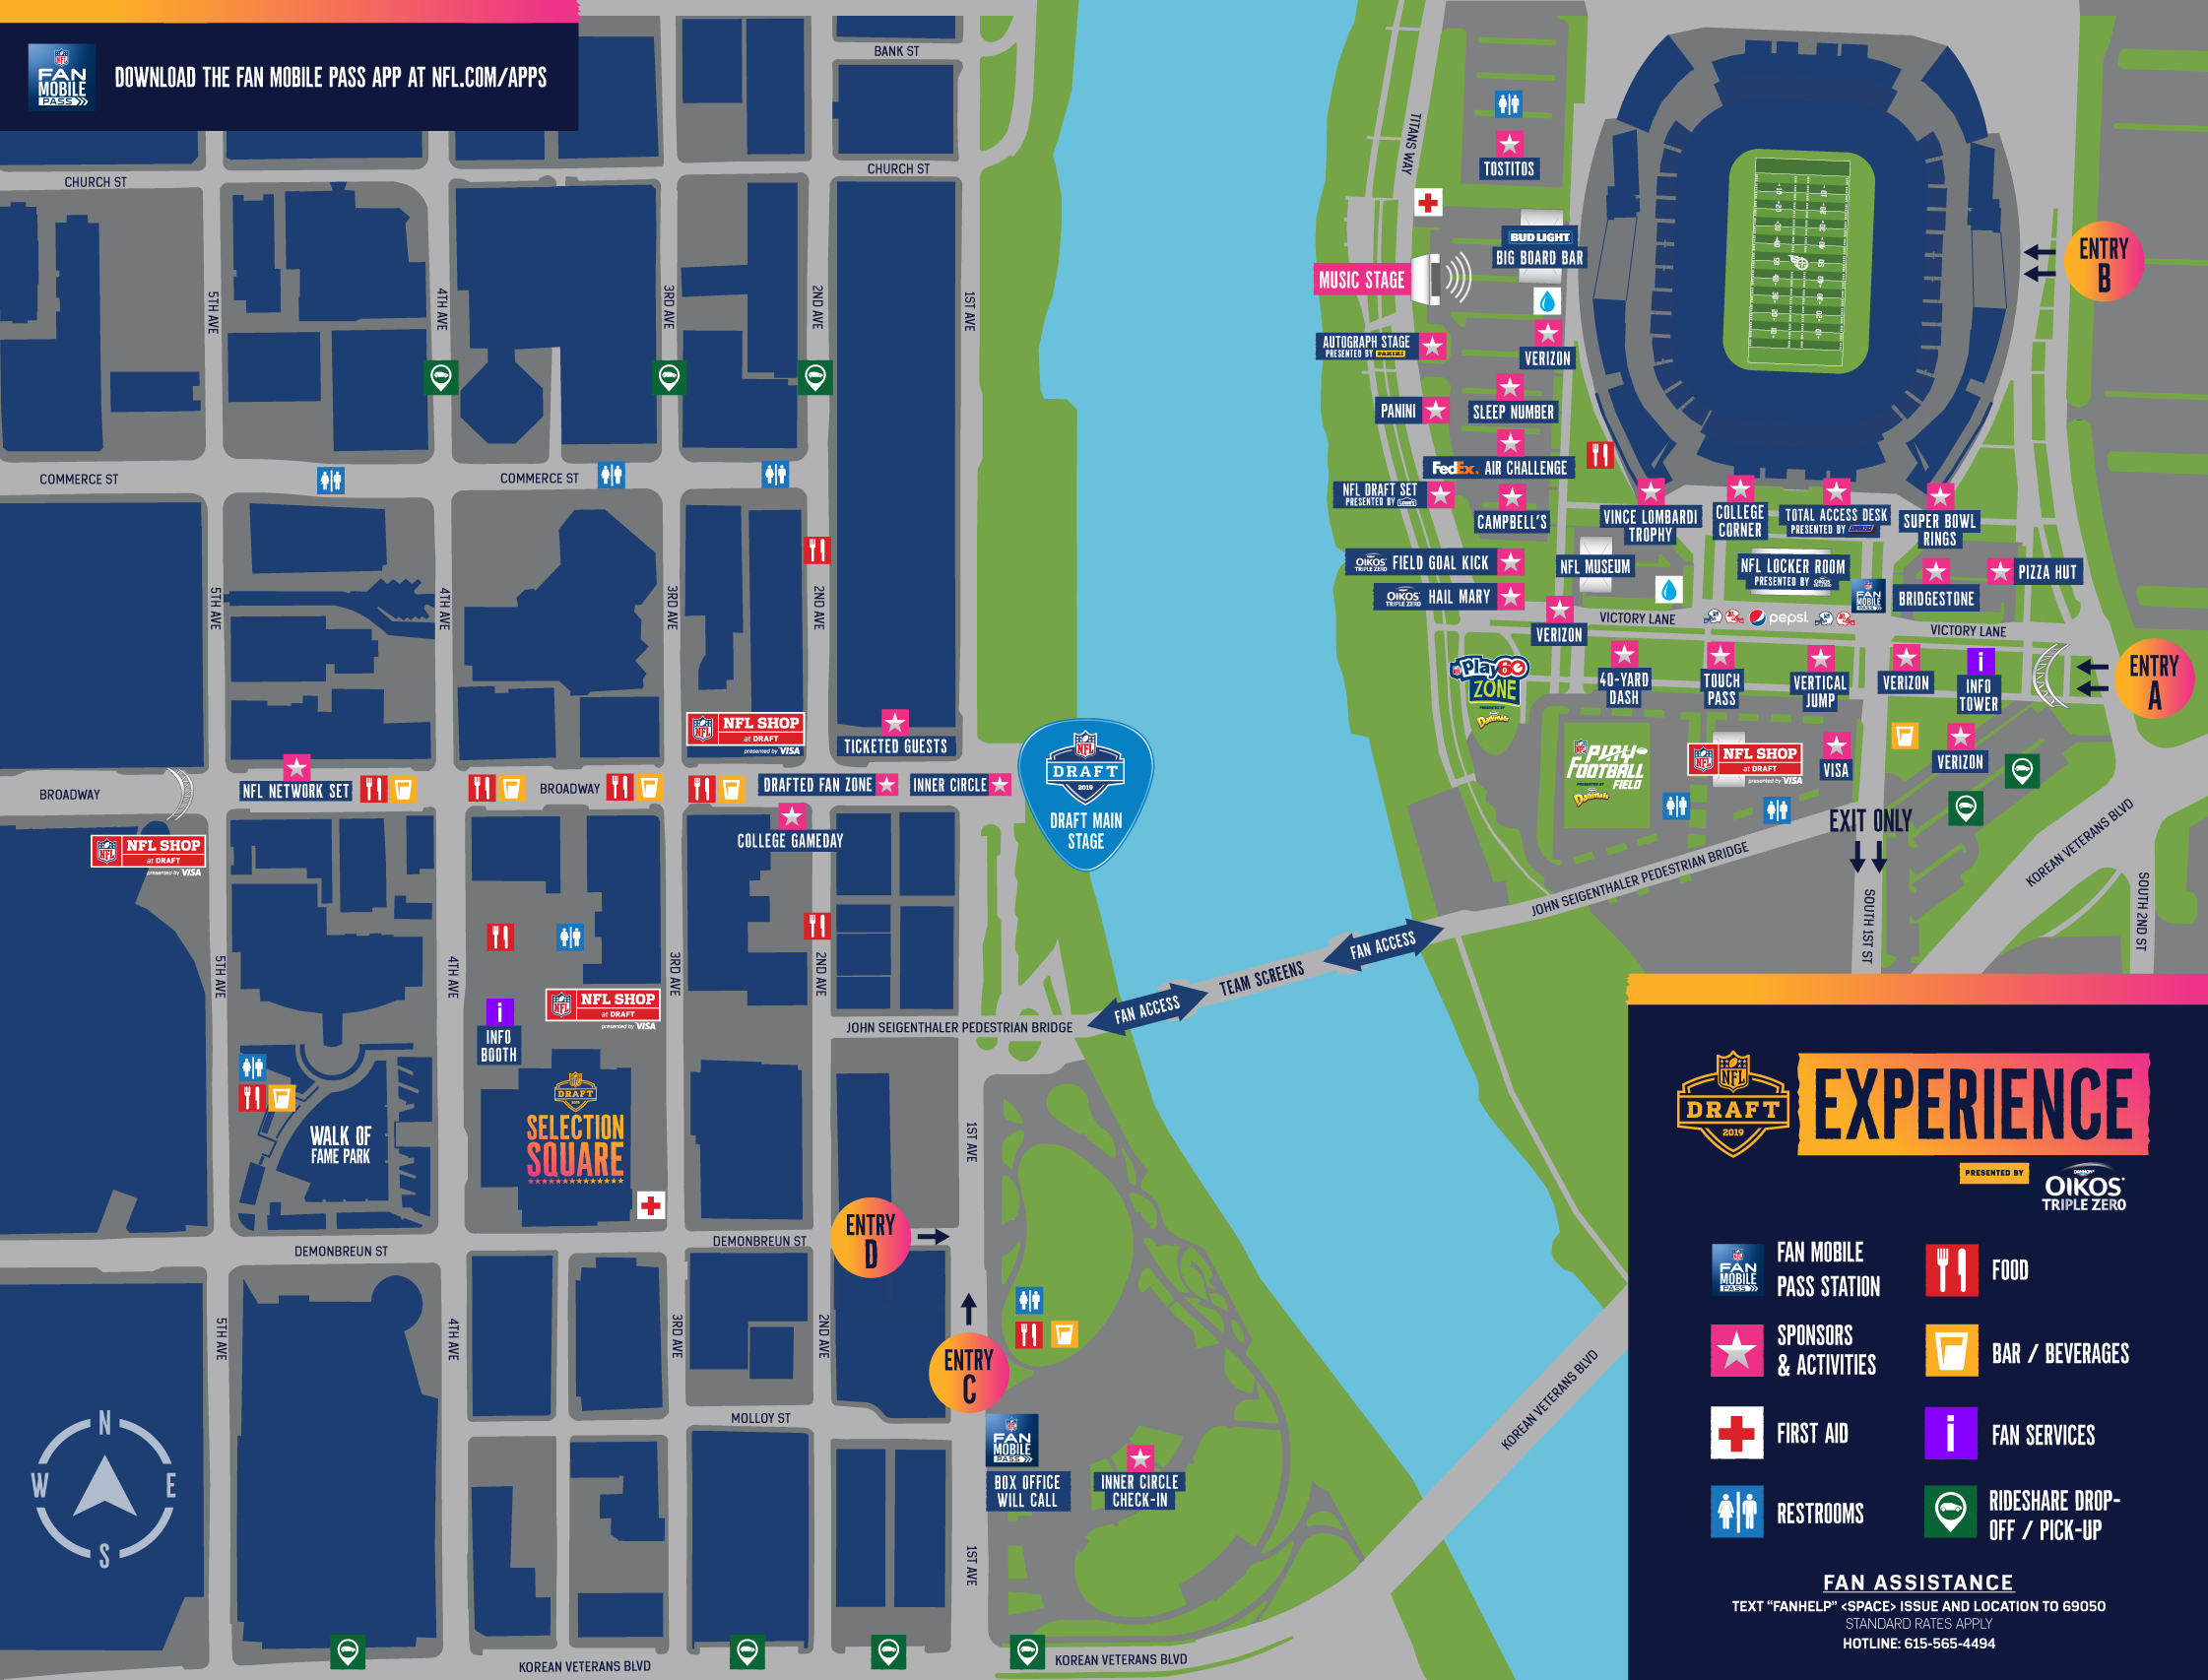 FanFacing CampusMap - How To Get Free Tickets For Nfl Draft In Nashville